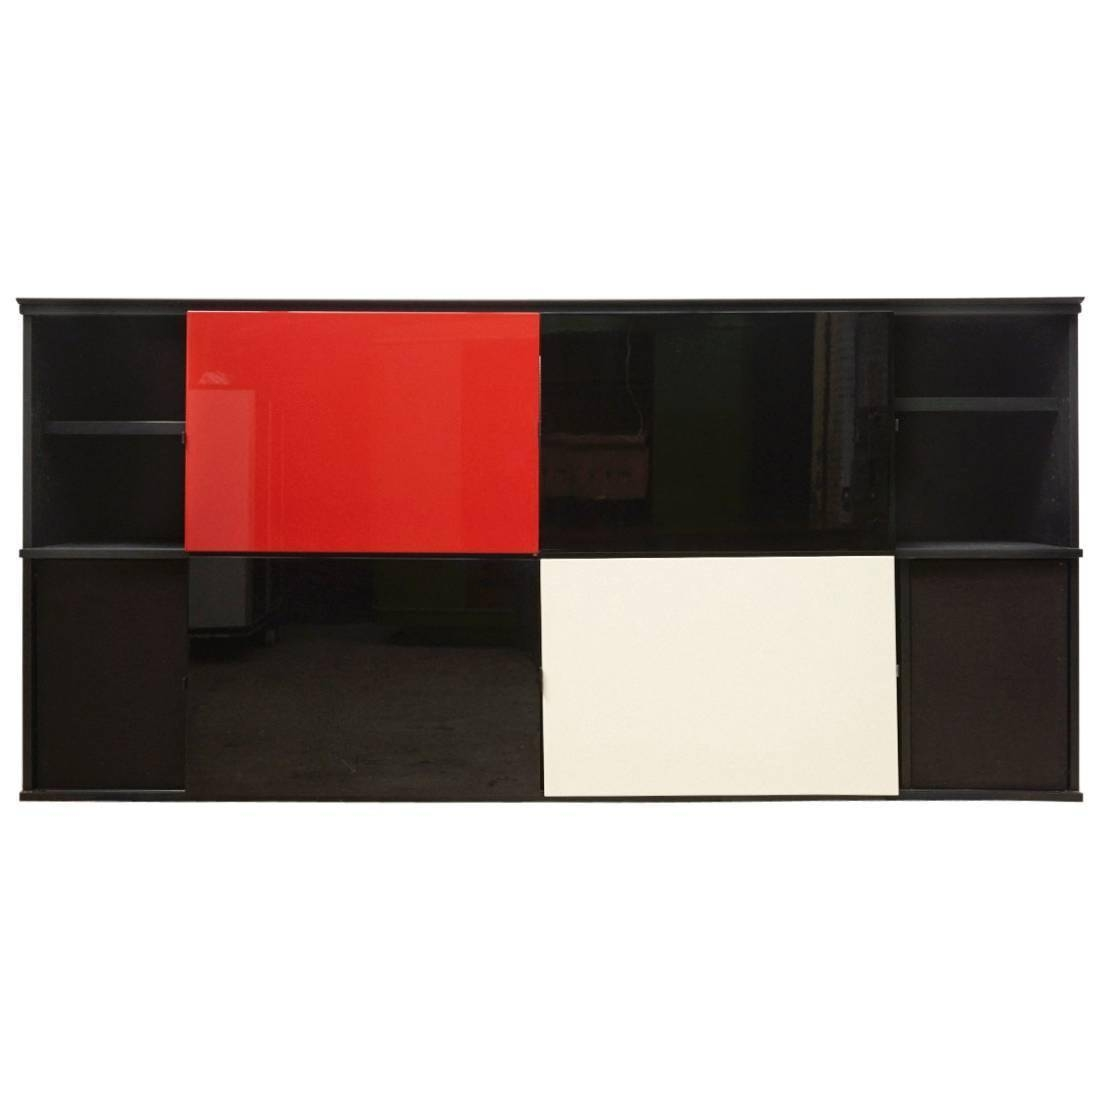 Acerbis 1980S Sideboard Designedlodovico Acerbis And Giotto regarding High Gloss Black Sideboards (Image 2 of 30)